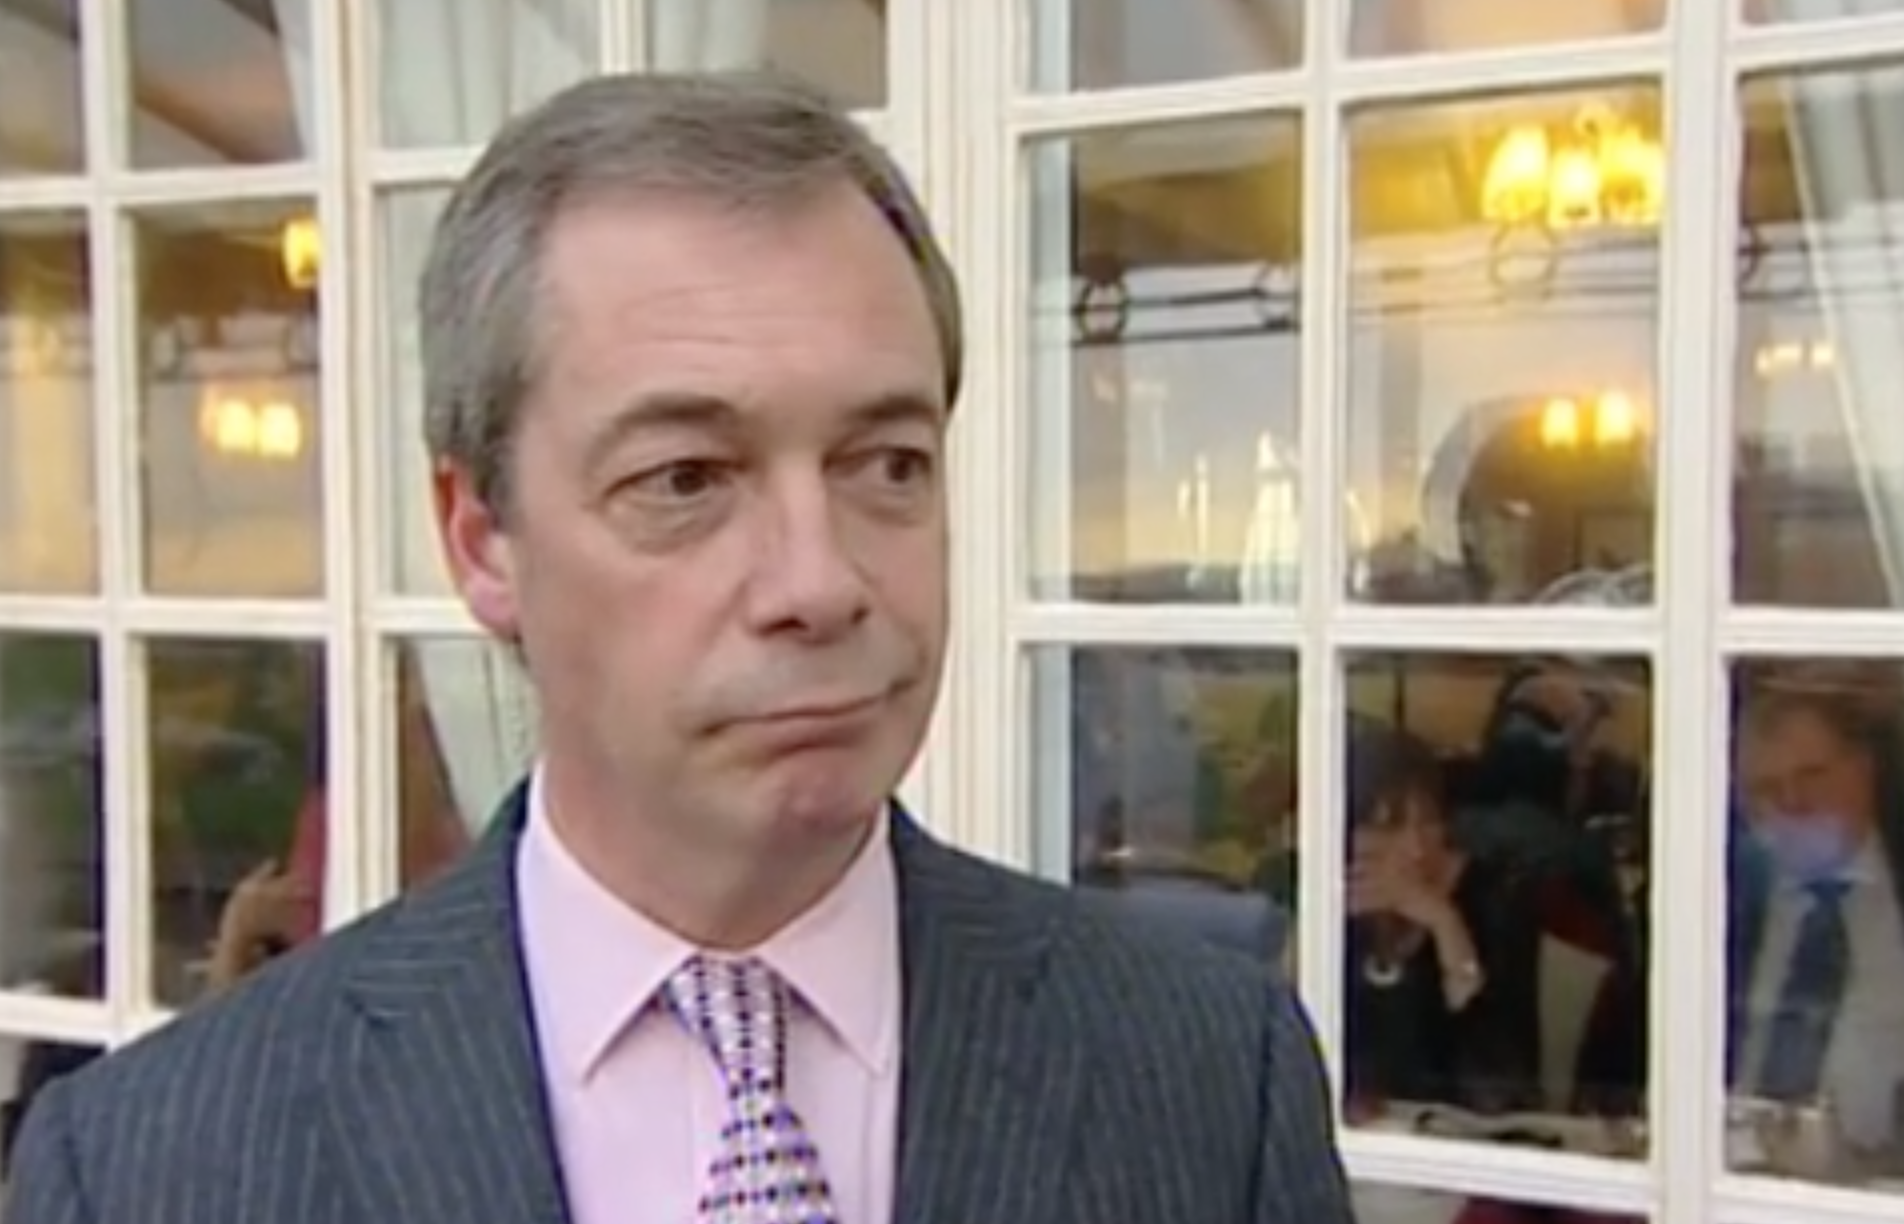 UKIP's Nigel Farage get's it wrong claiming there is no sex discrimination in the City